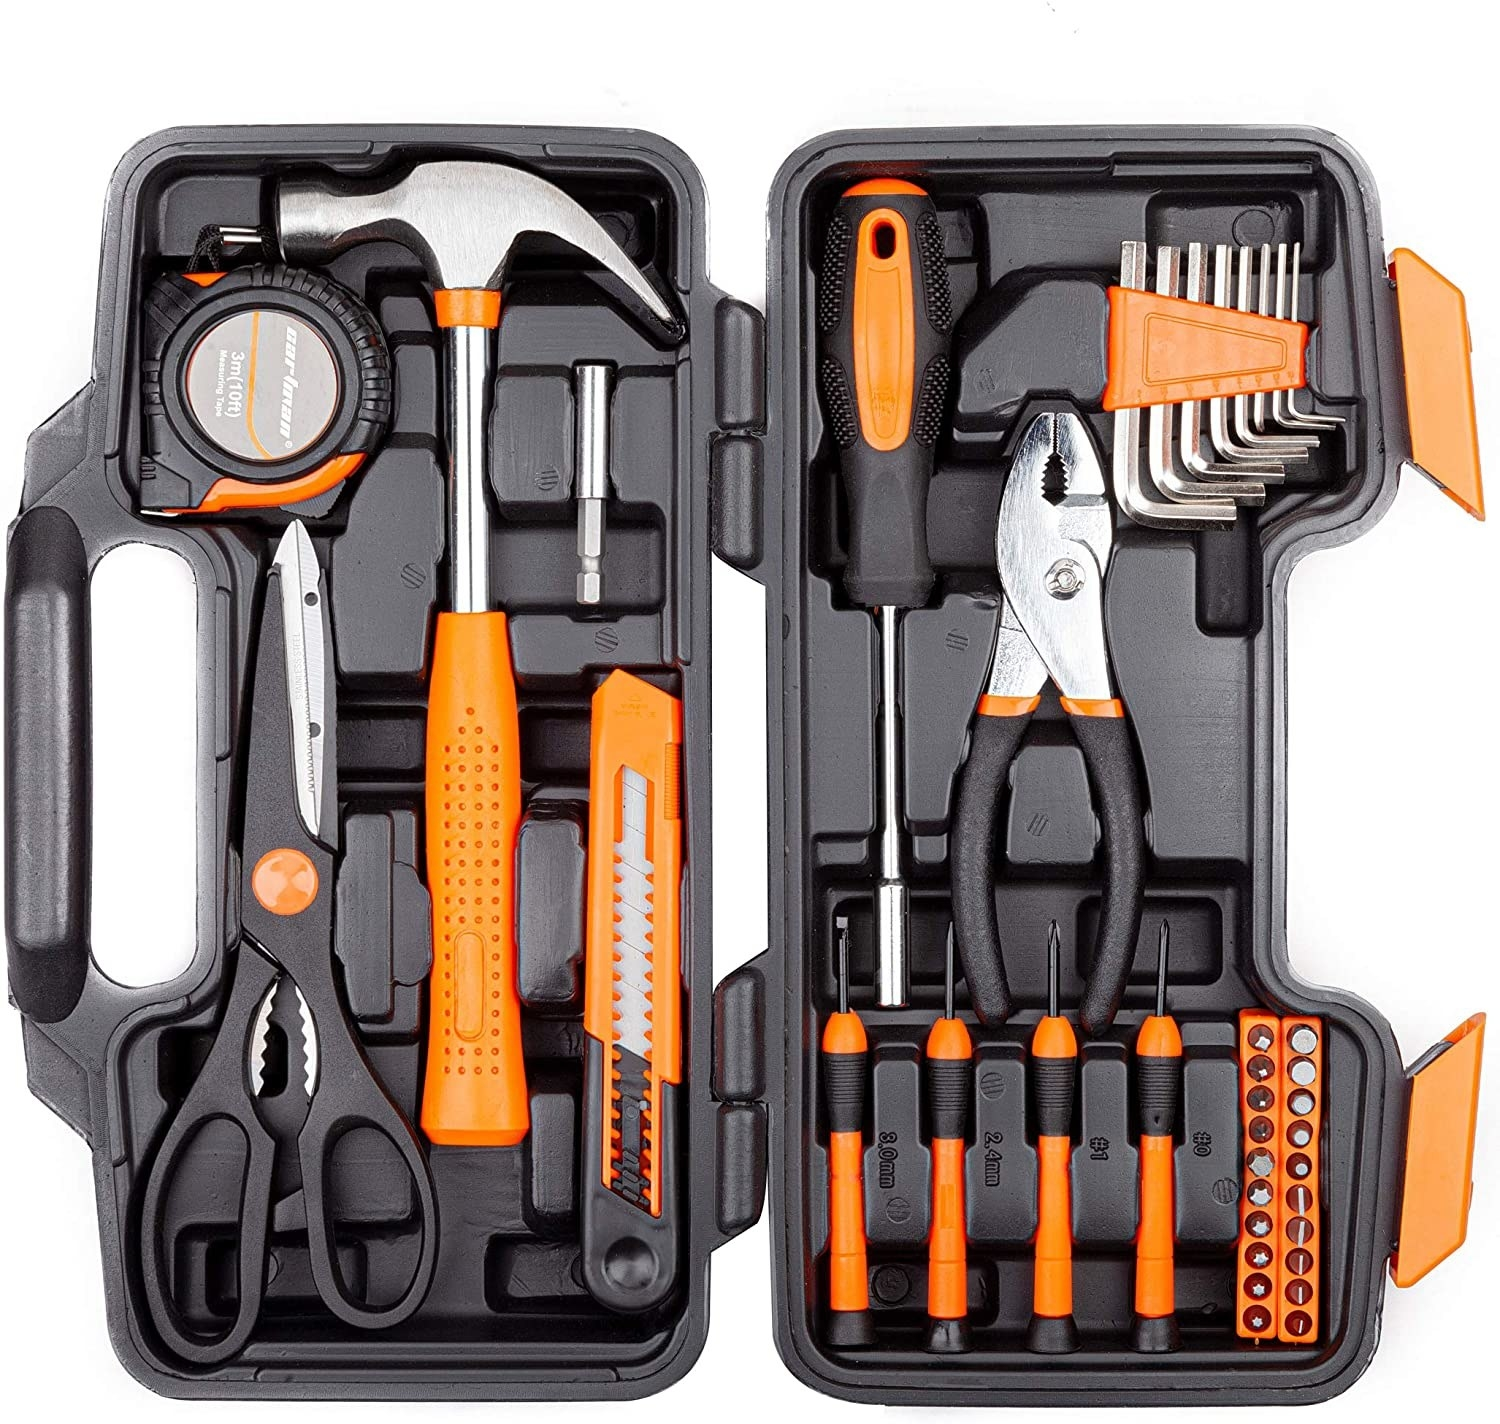 The open tool kit showing all the tools locked in place